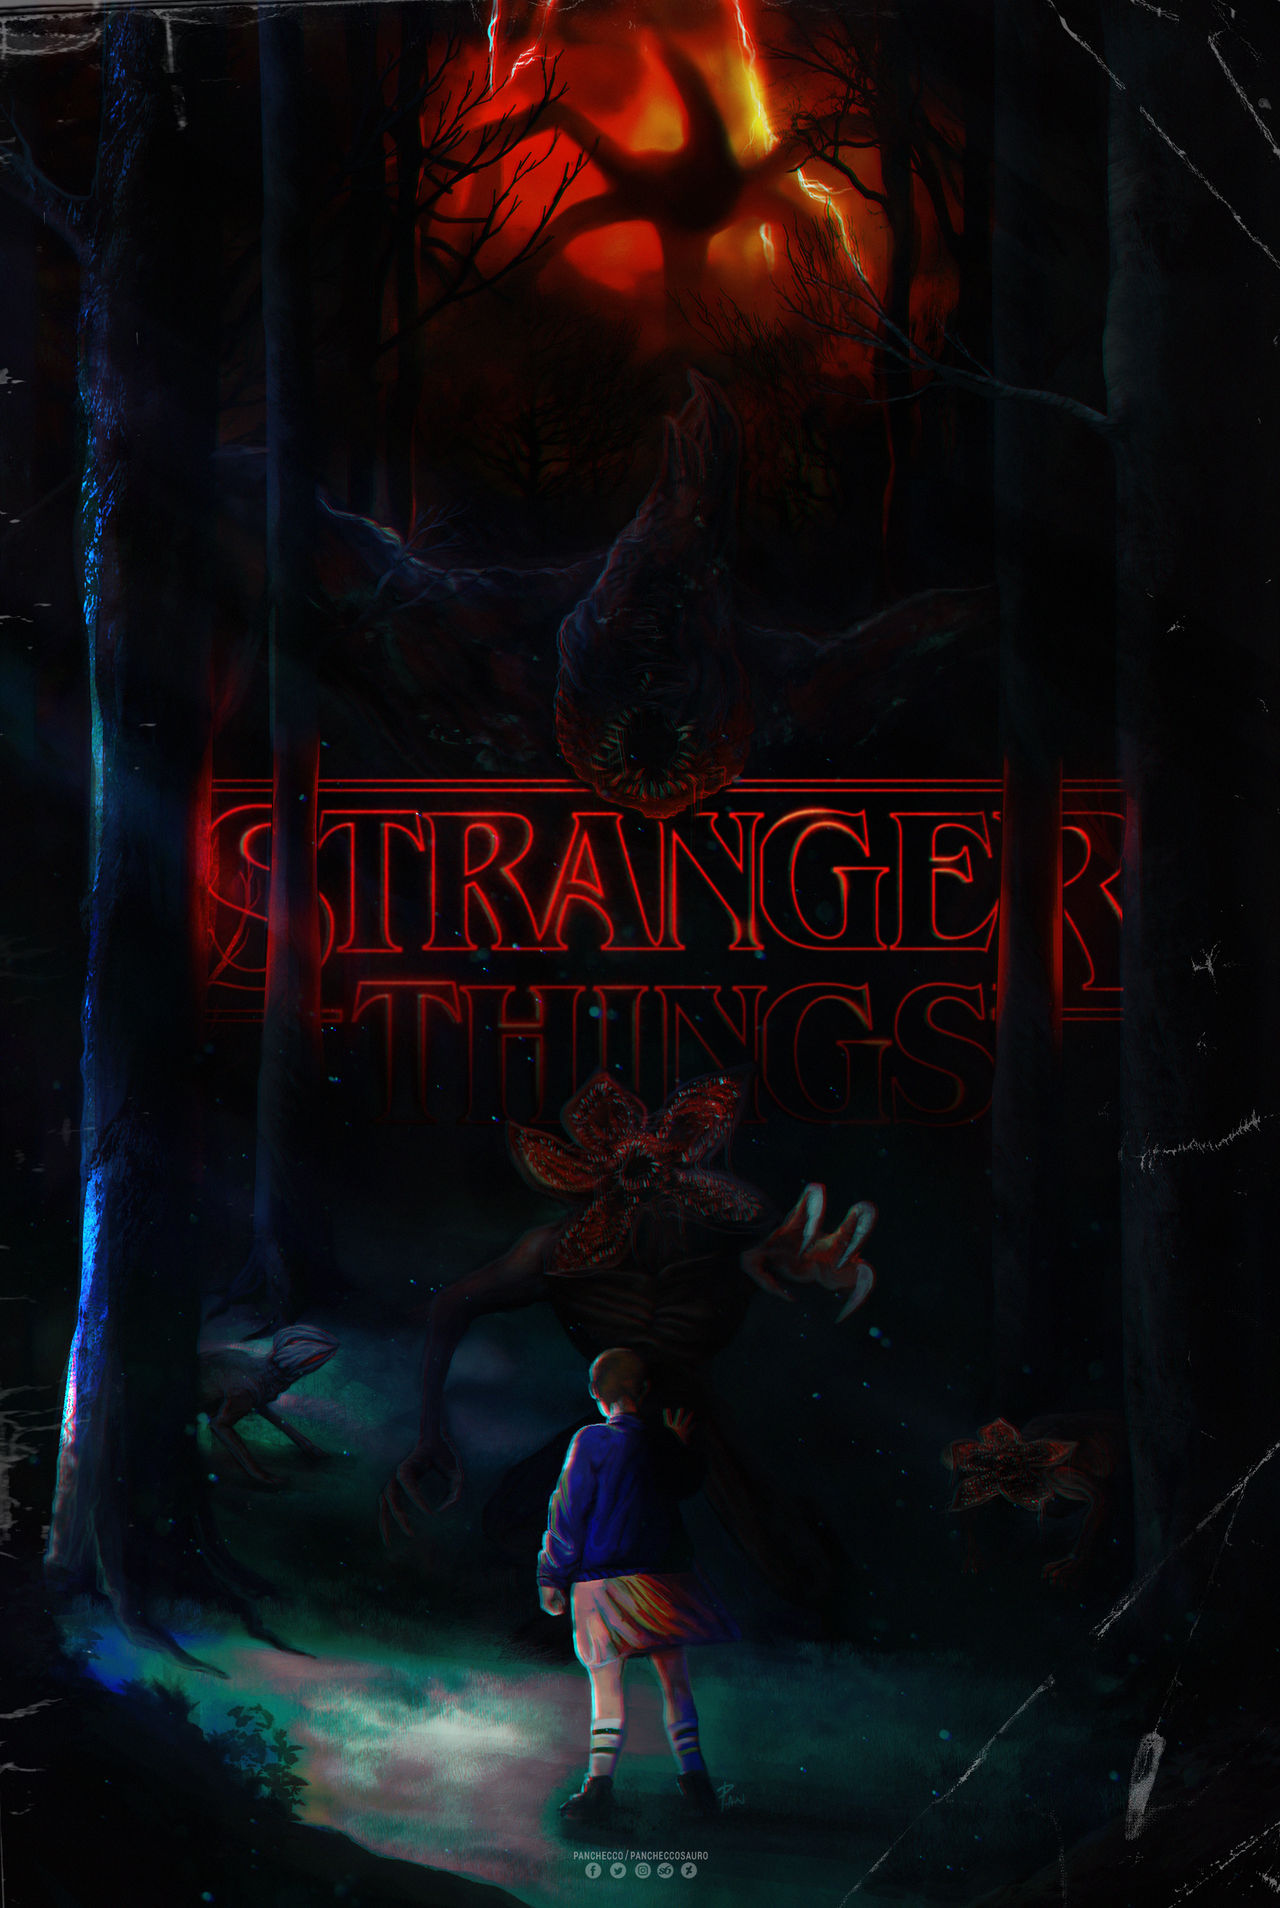 Stranger Things Poster By Panchecco On Deviantart Trends is excited to bring stranger things posters, calendars, planners, decals, stickers and bookmarks to the fans who love the mystery and adventure centered around hawkins, indiana. stranger things poster by panchecco on